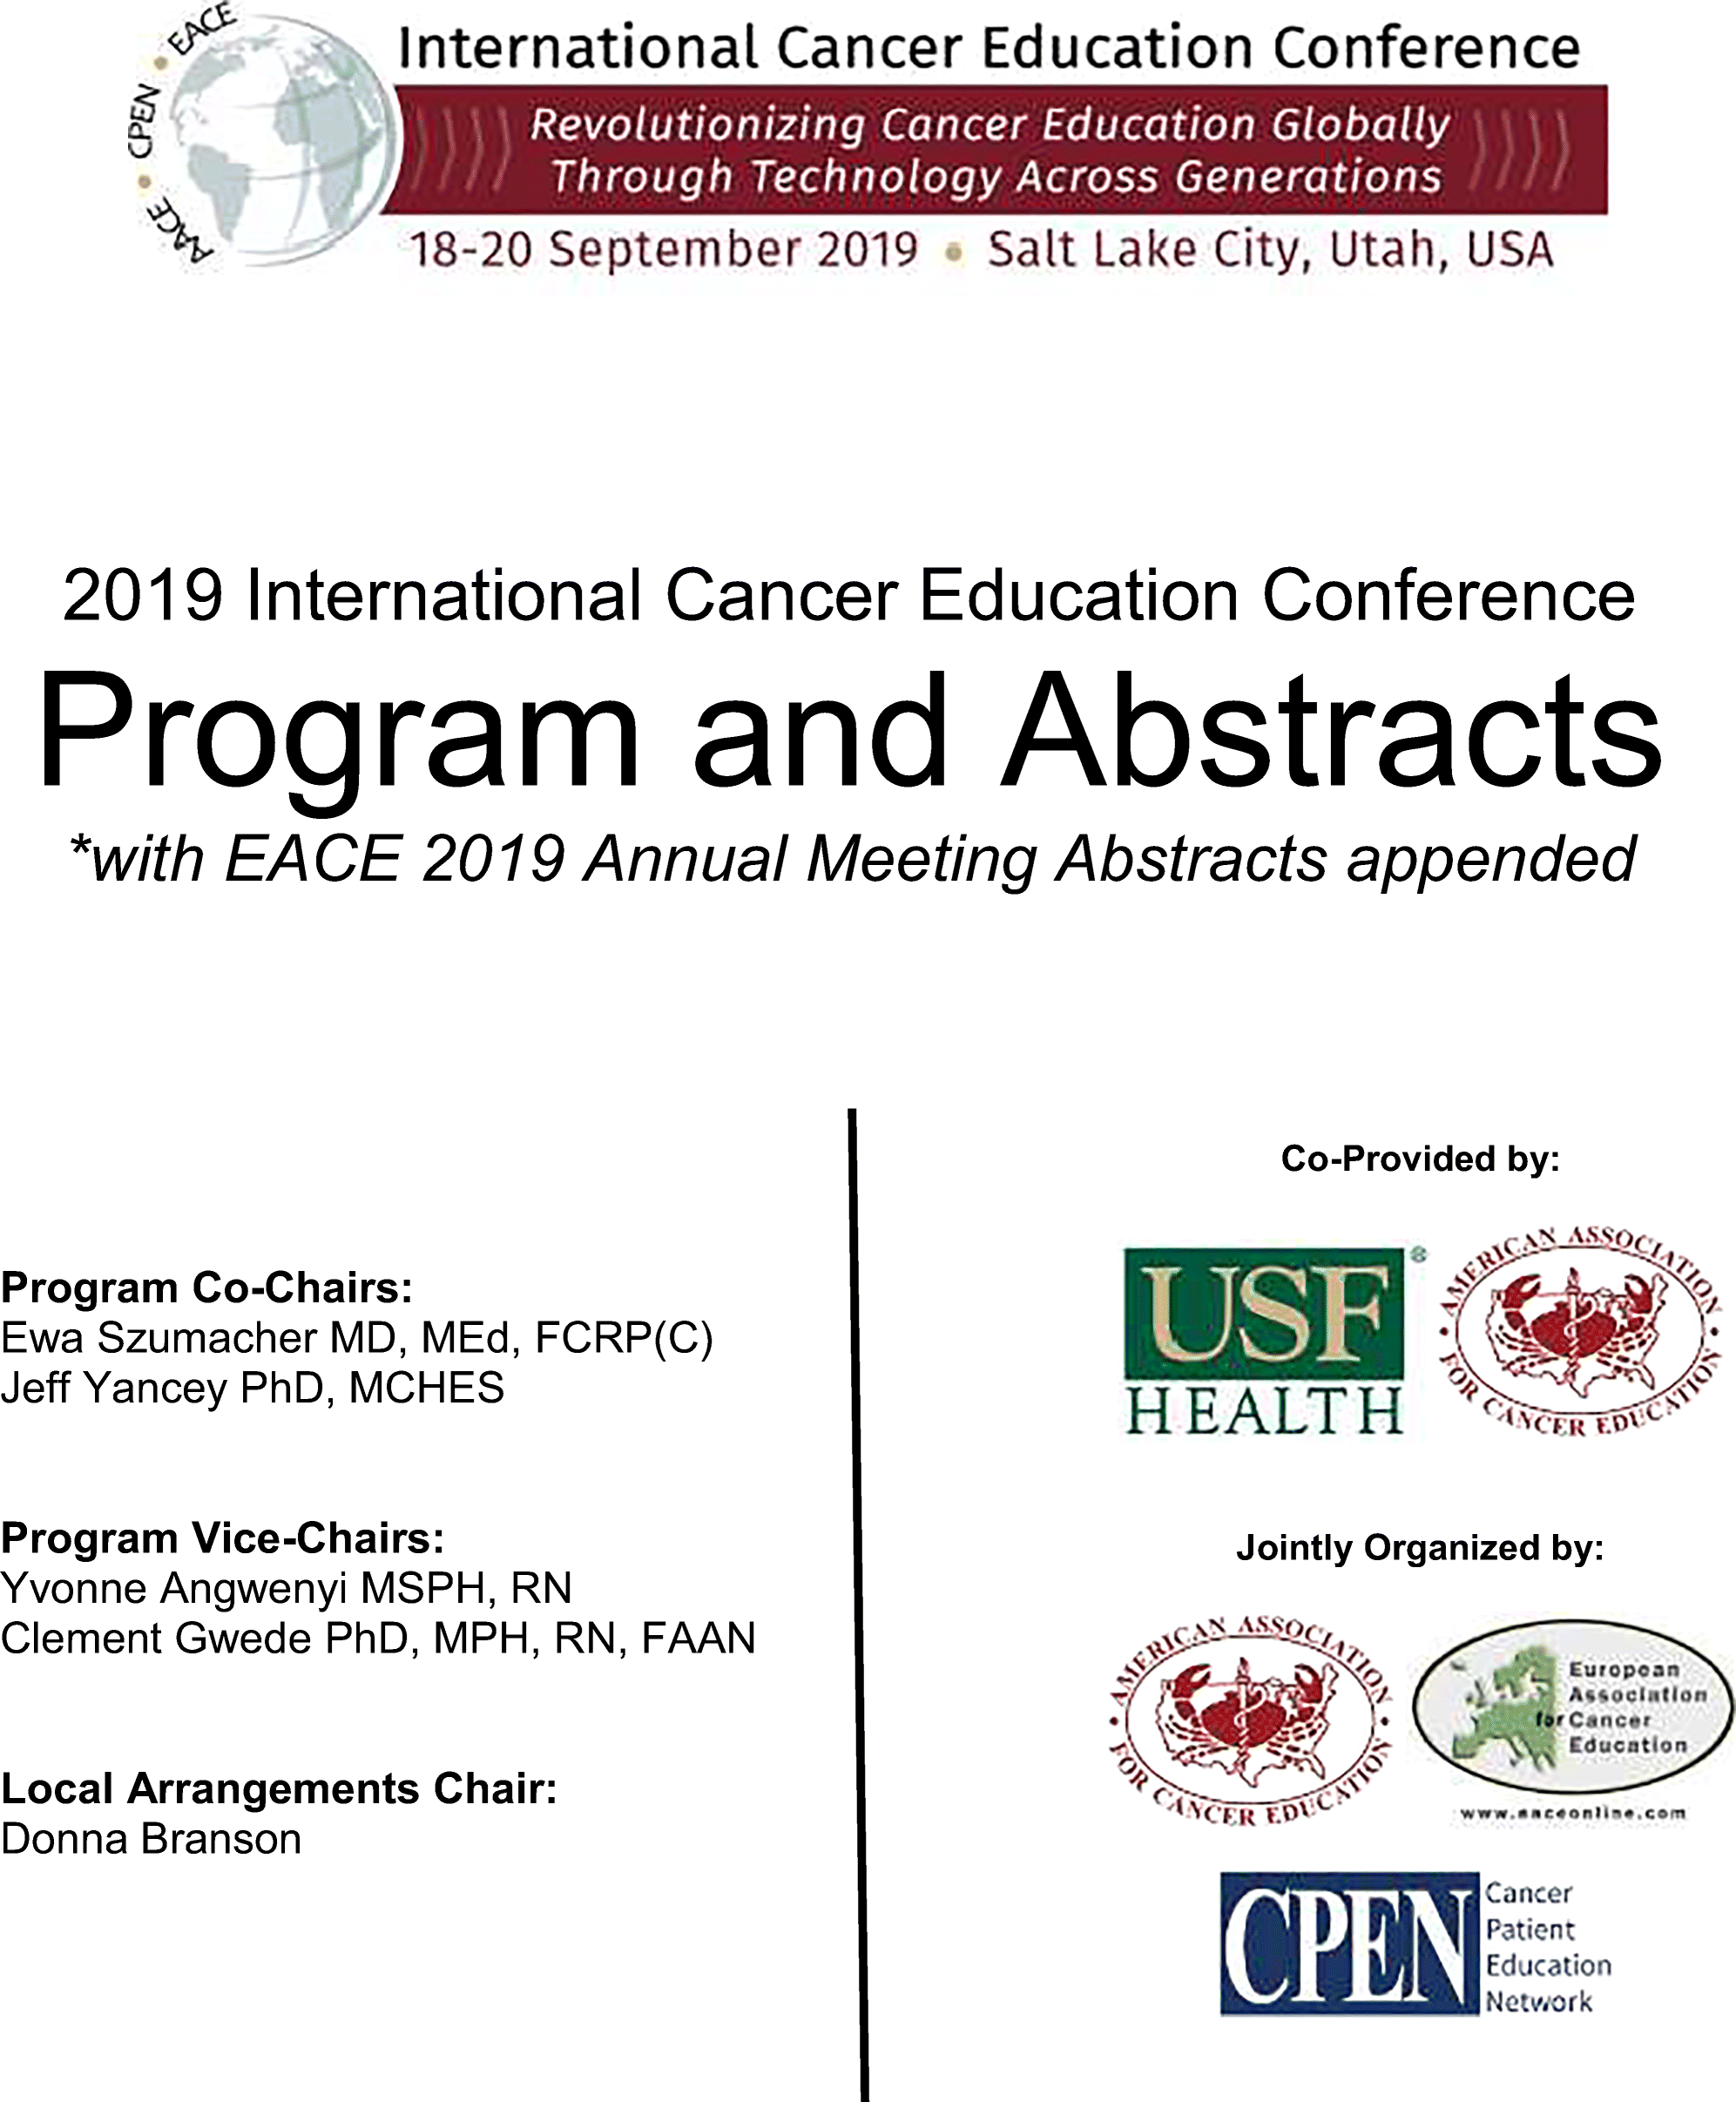 2019 International Cancer Education Conference Program and